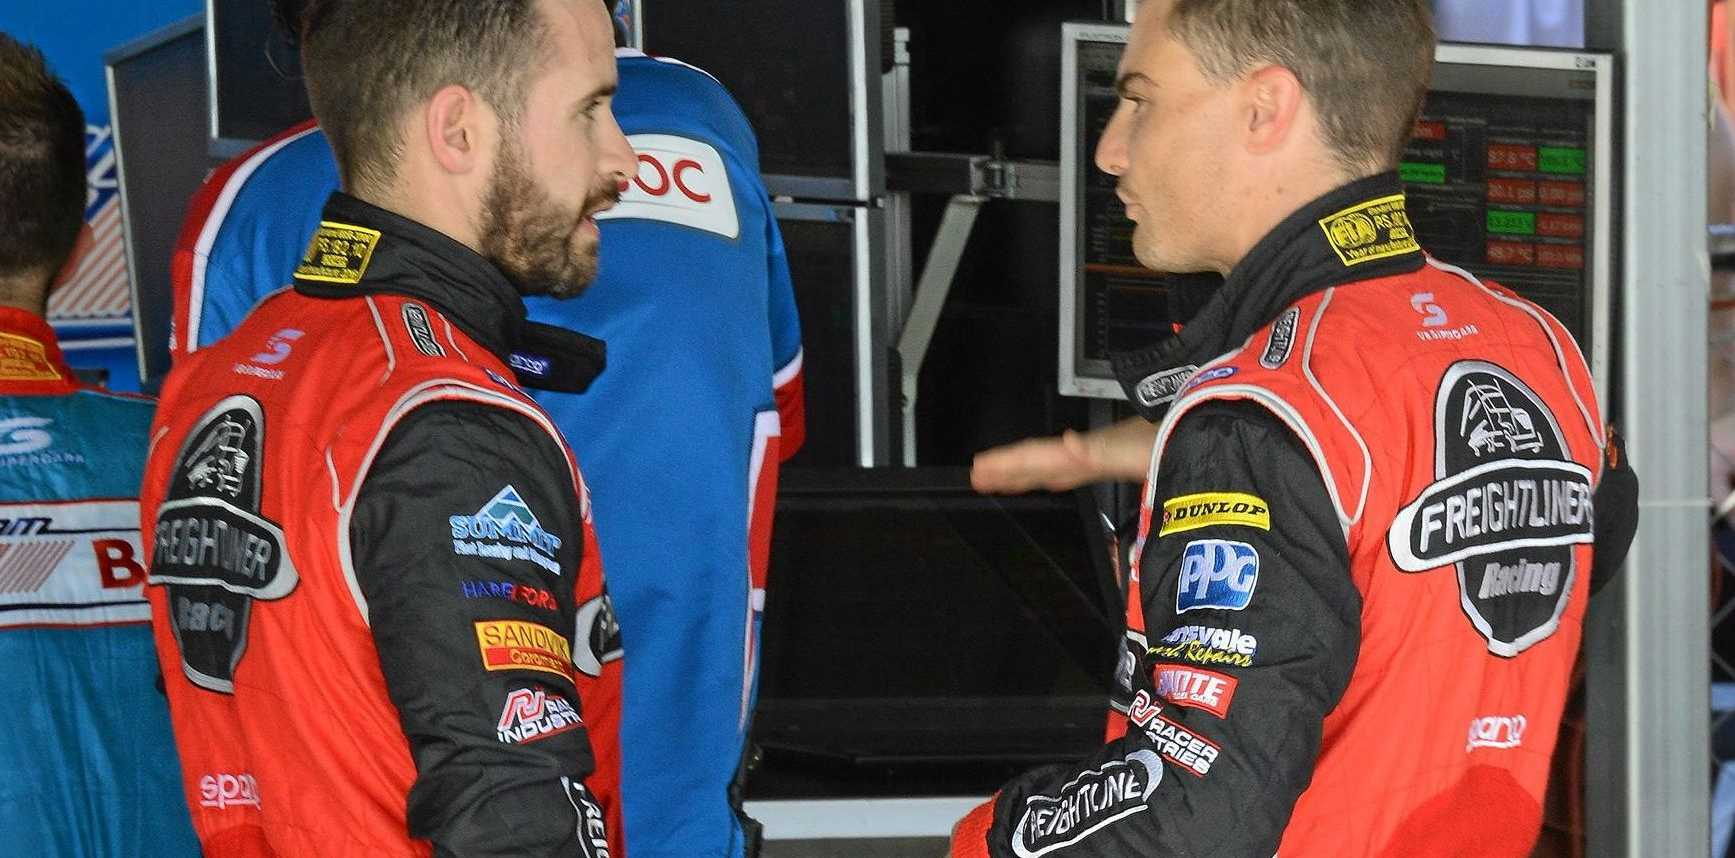 Ipswich racer Ash Walsh (left) discusses tactics with Supercars driver Tim Slade after a co-drivers practice session at Queensland Raceway.